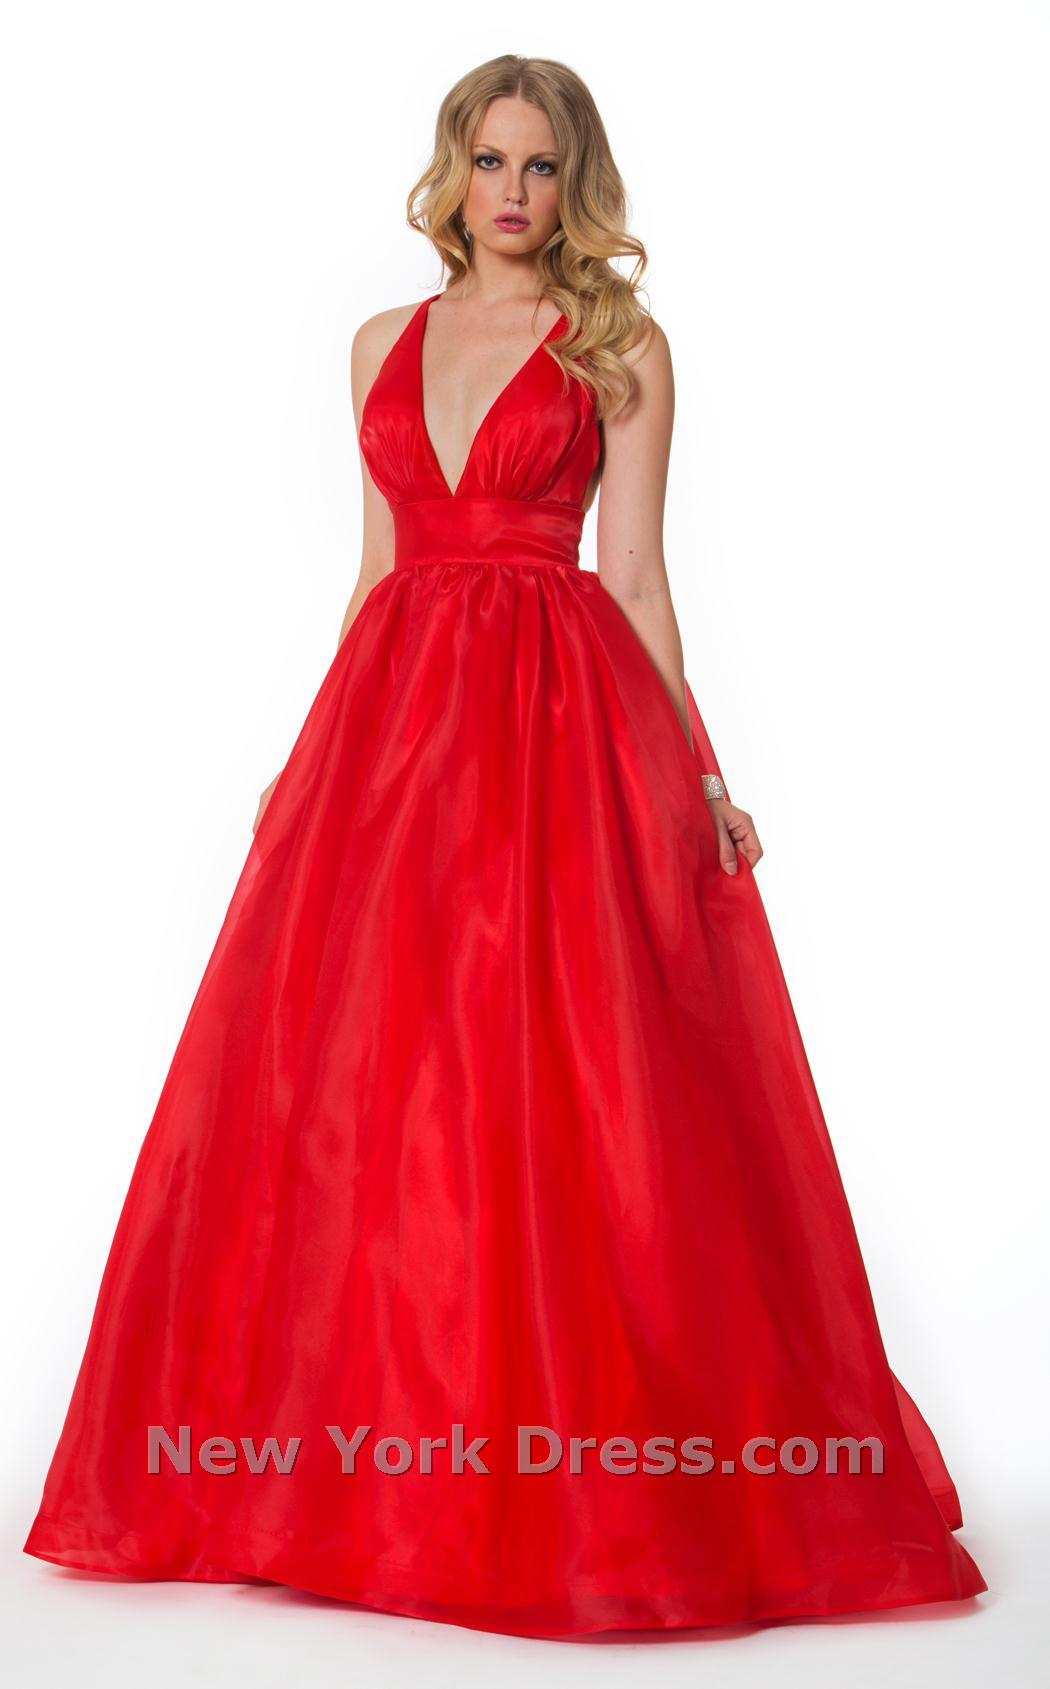 Nika 9019 Dress - NewYorkDress.com